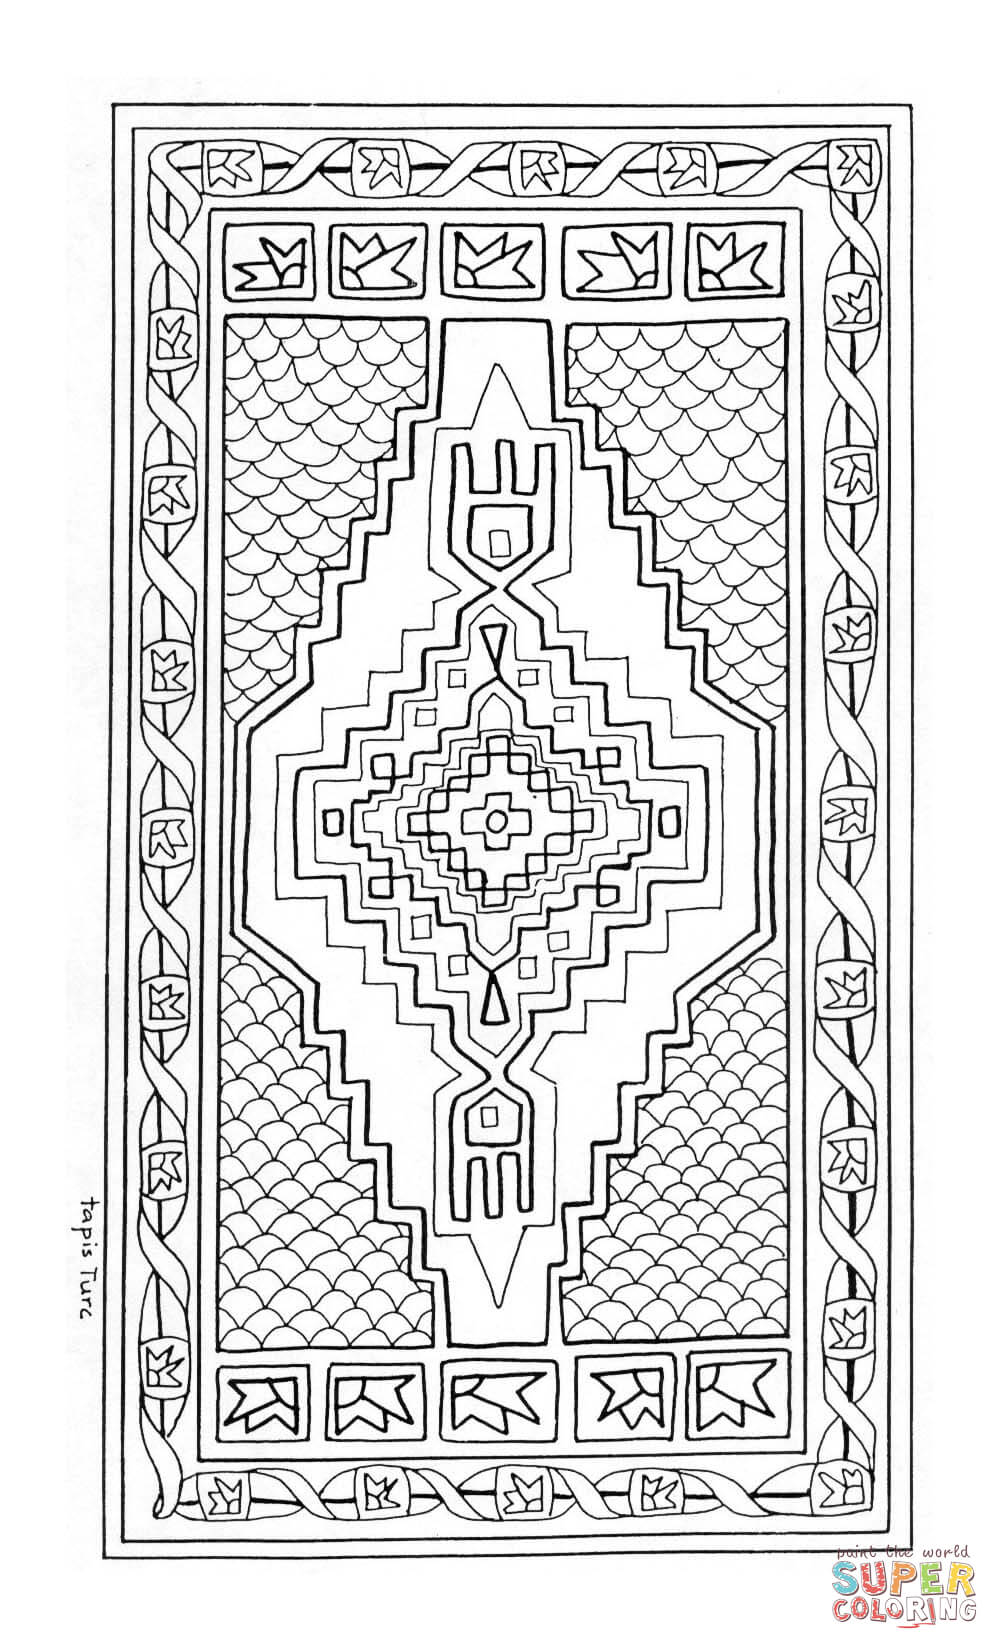 rug coloring page rug coloring page clip art sketch coloring page rug coloring page